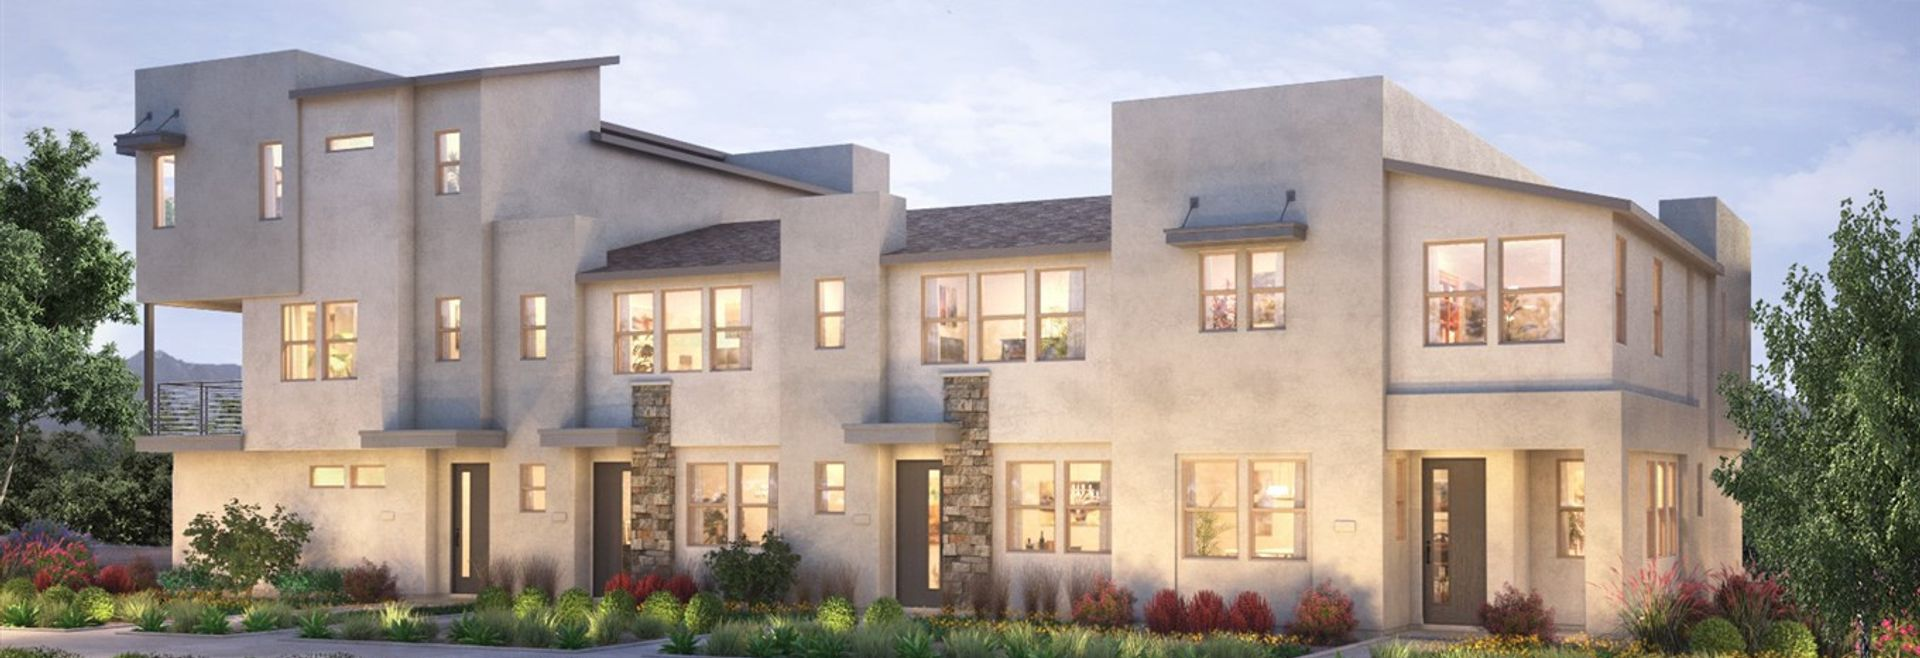 The District by Shea Homes in Northridge, CA